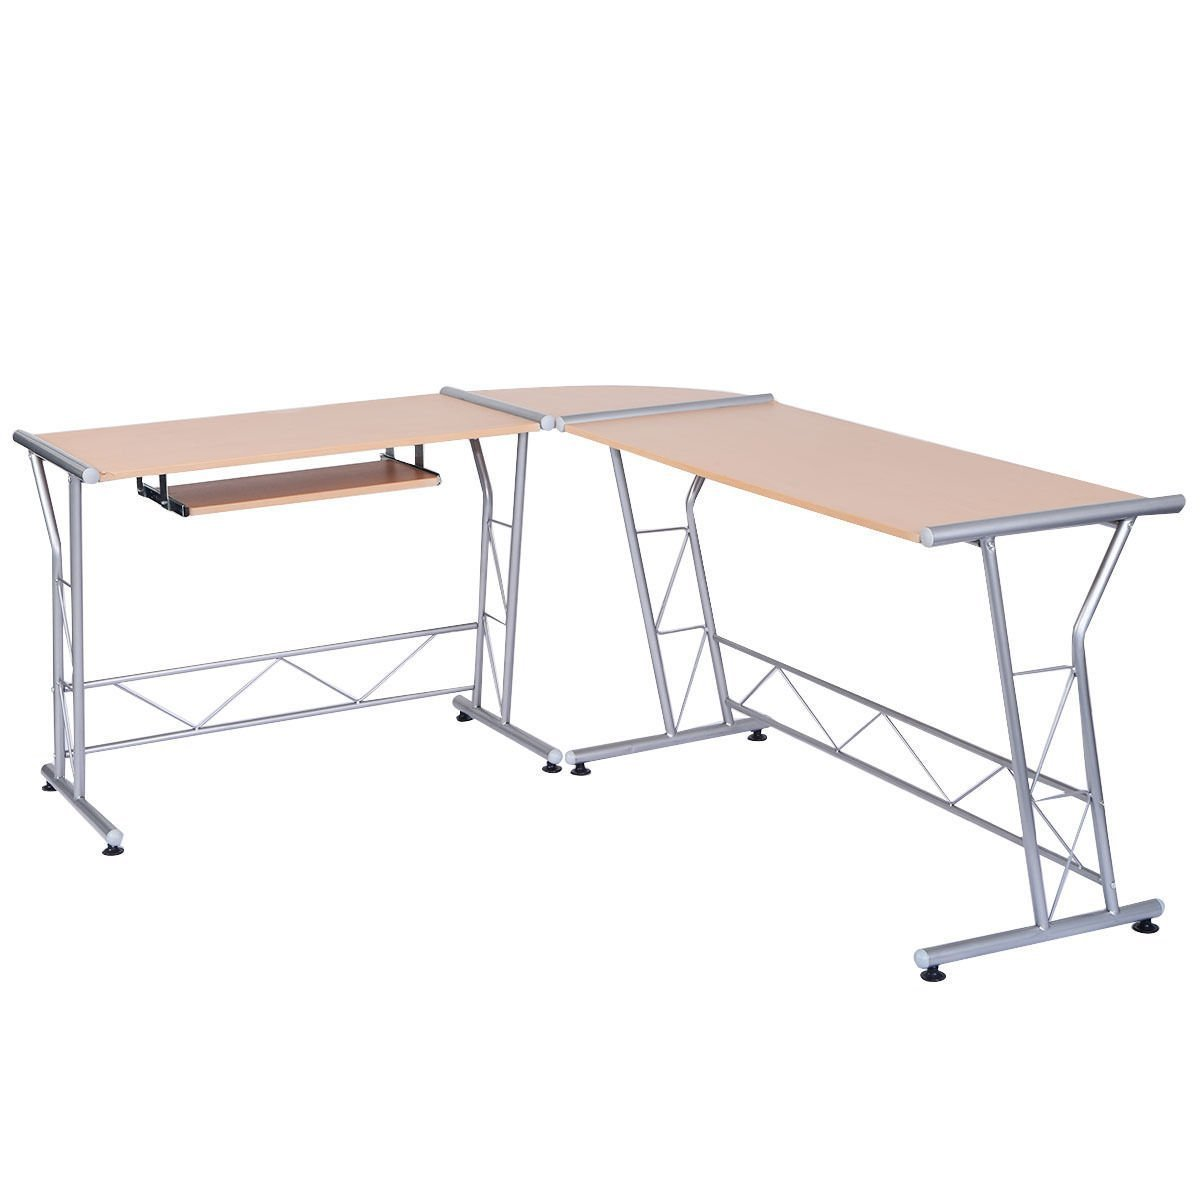 word 39office desks workstations39and. Amazon.com: Tangkula L-shape Computer Writing Work Study Table Workstation Wood Home Office Furniture: Kitchen \u0026 Dining Word 39office Desks Workstations39and